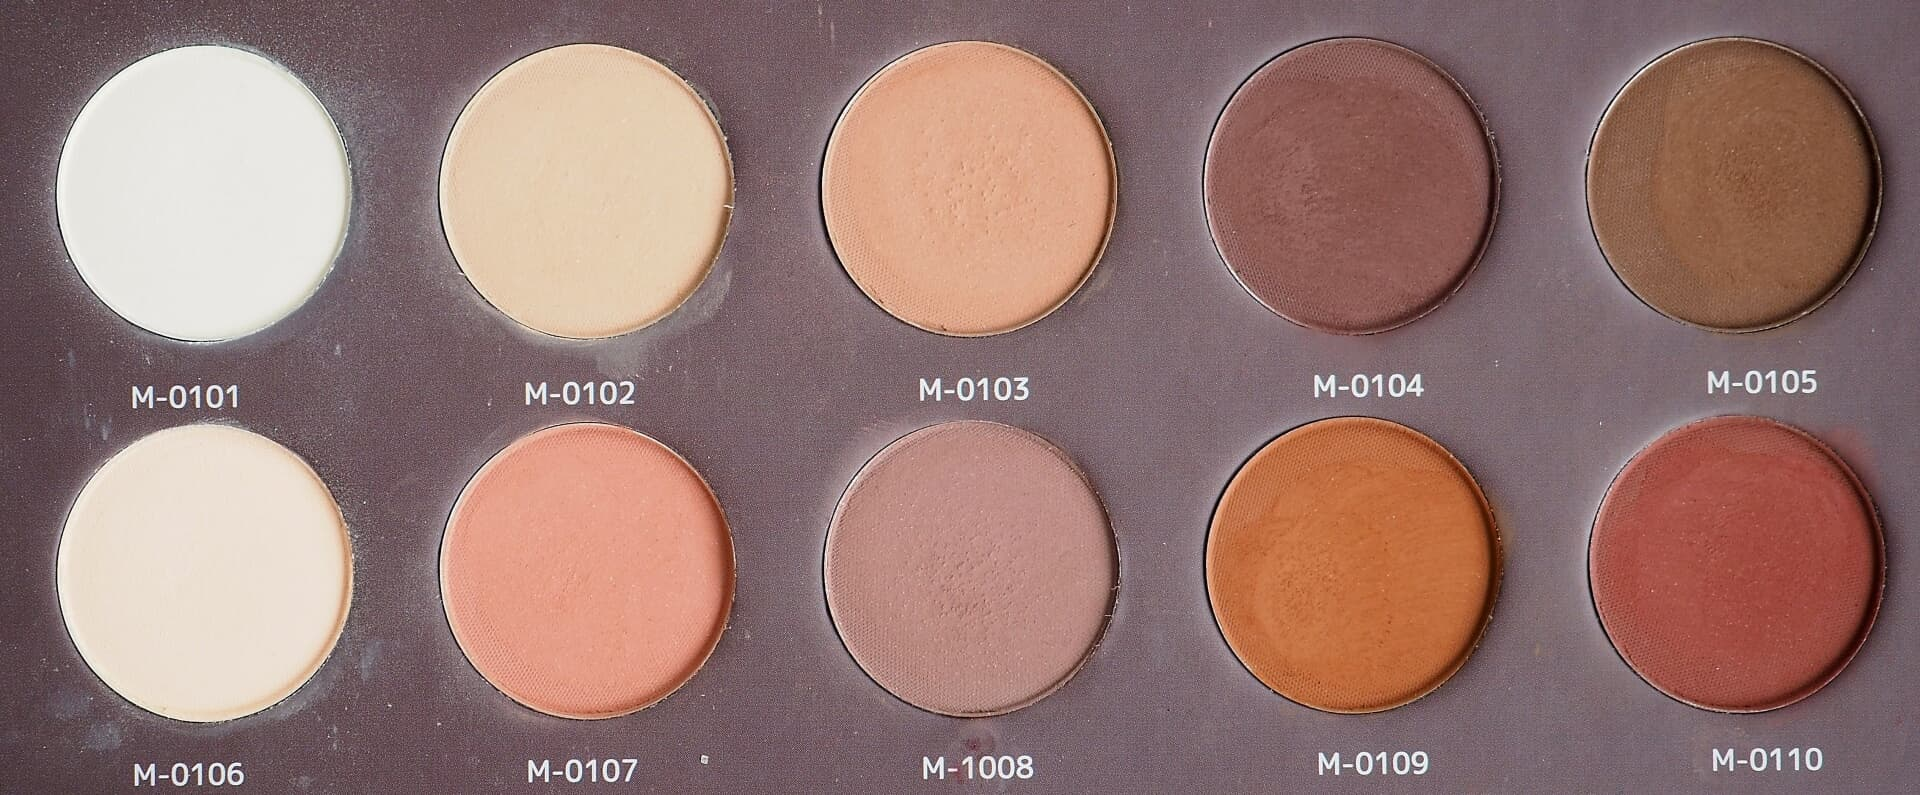 Affect Naturally Matt Eyeshadows Palette